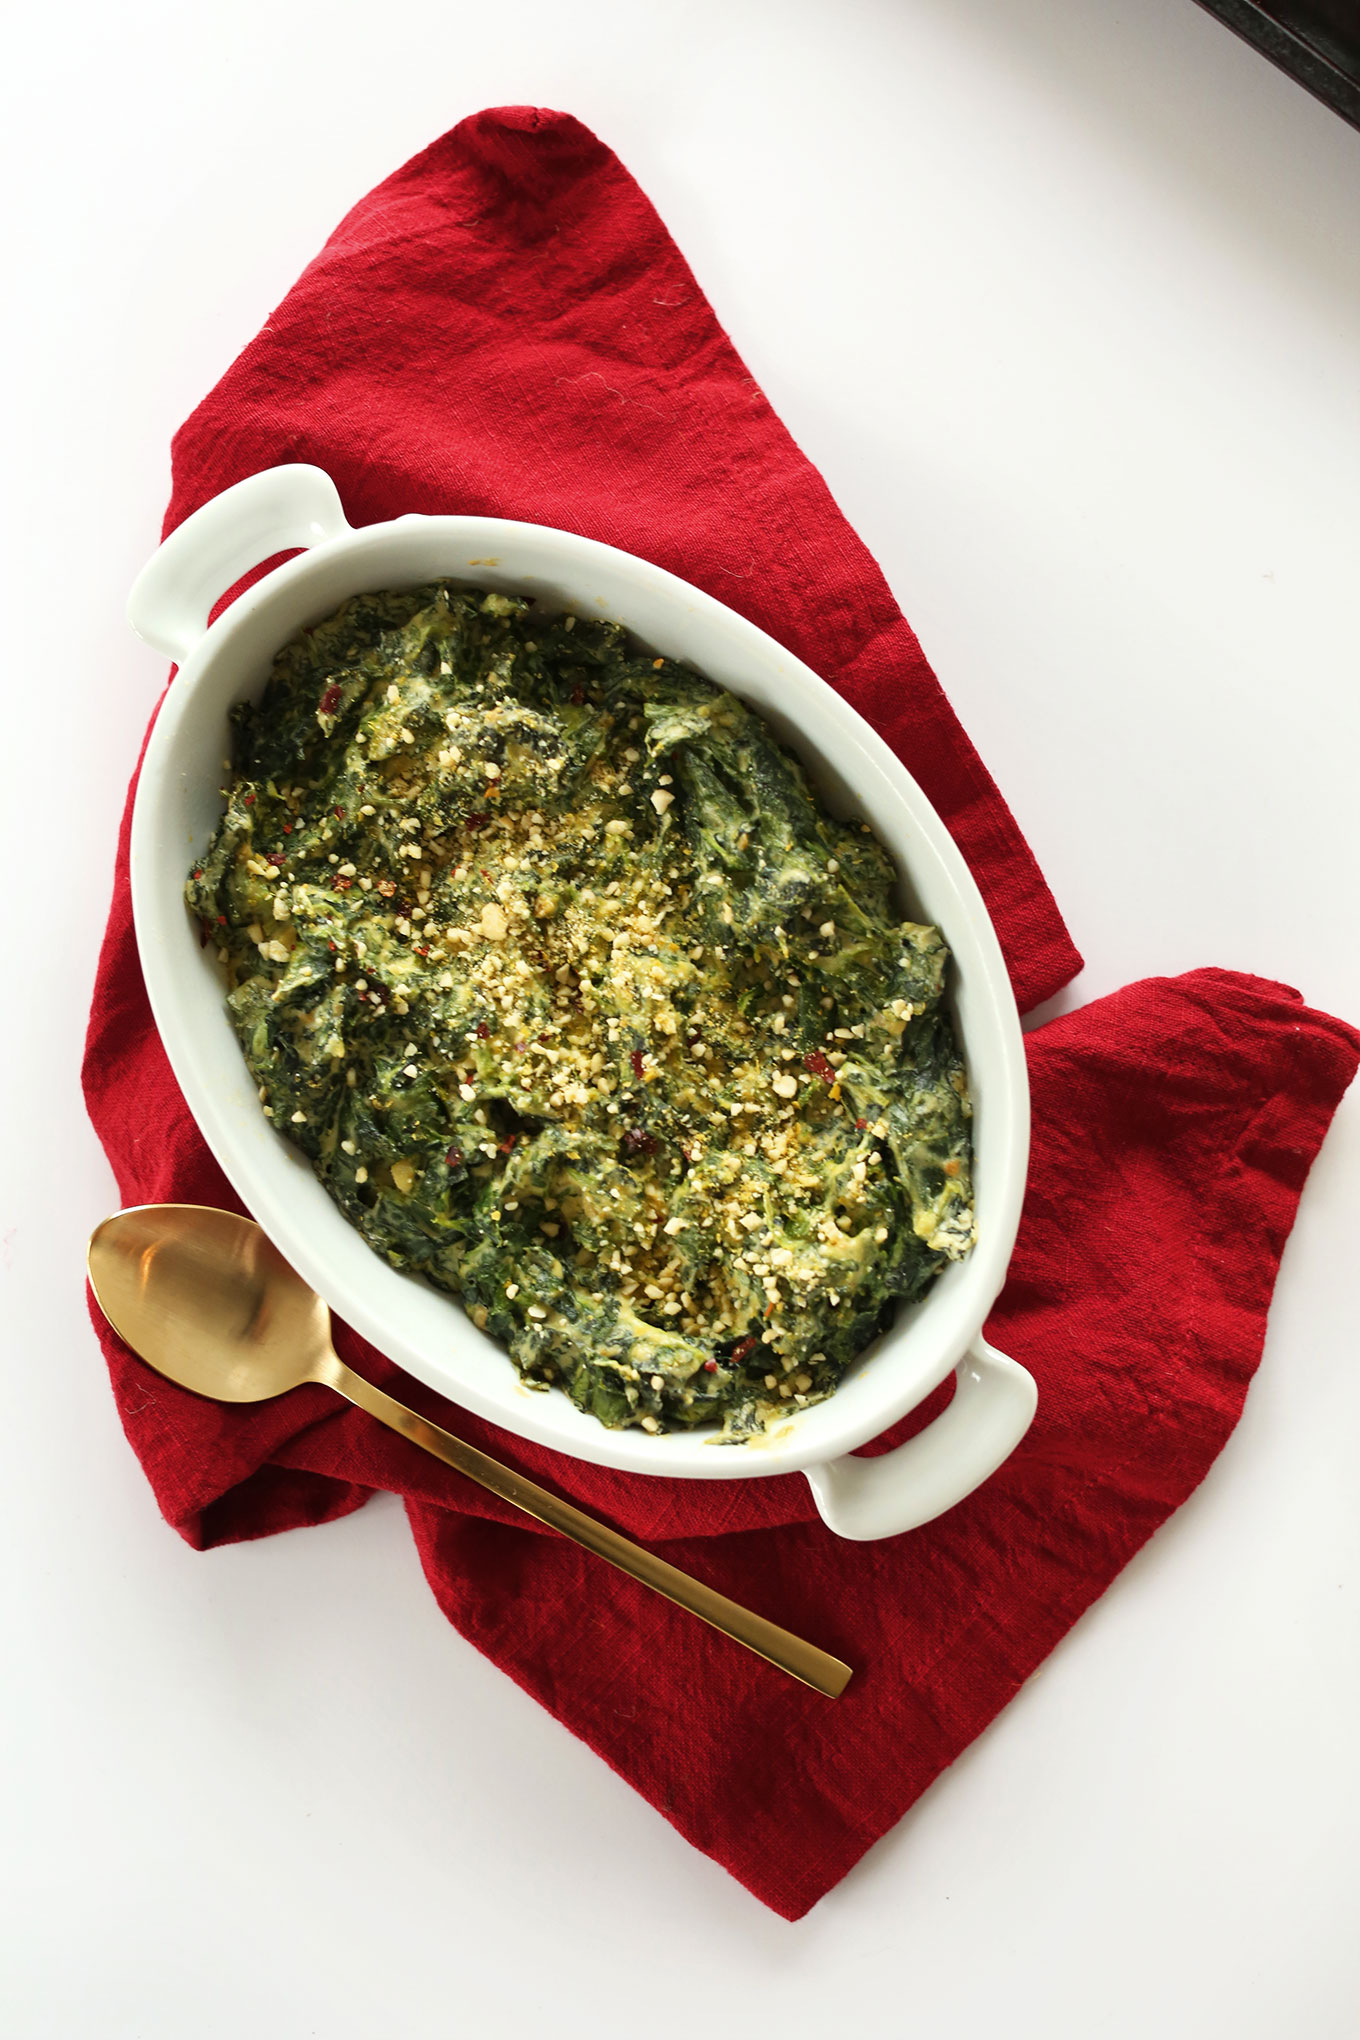 Ceramic dish filled with our fast and healthy Kale and Spinach Dip